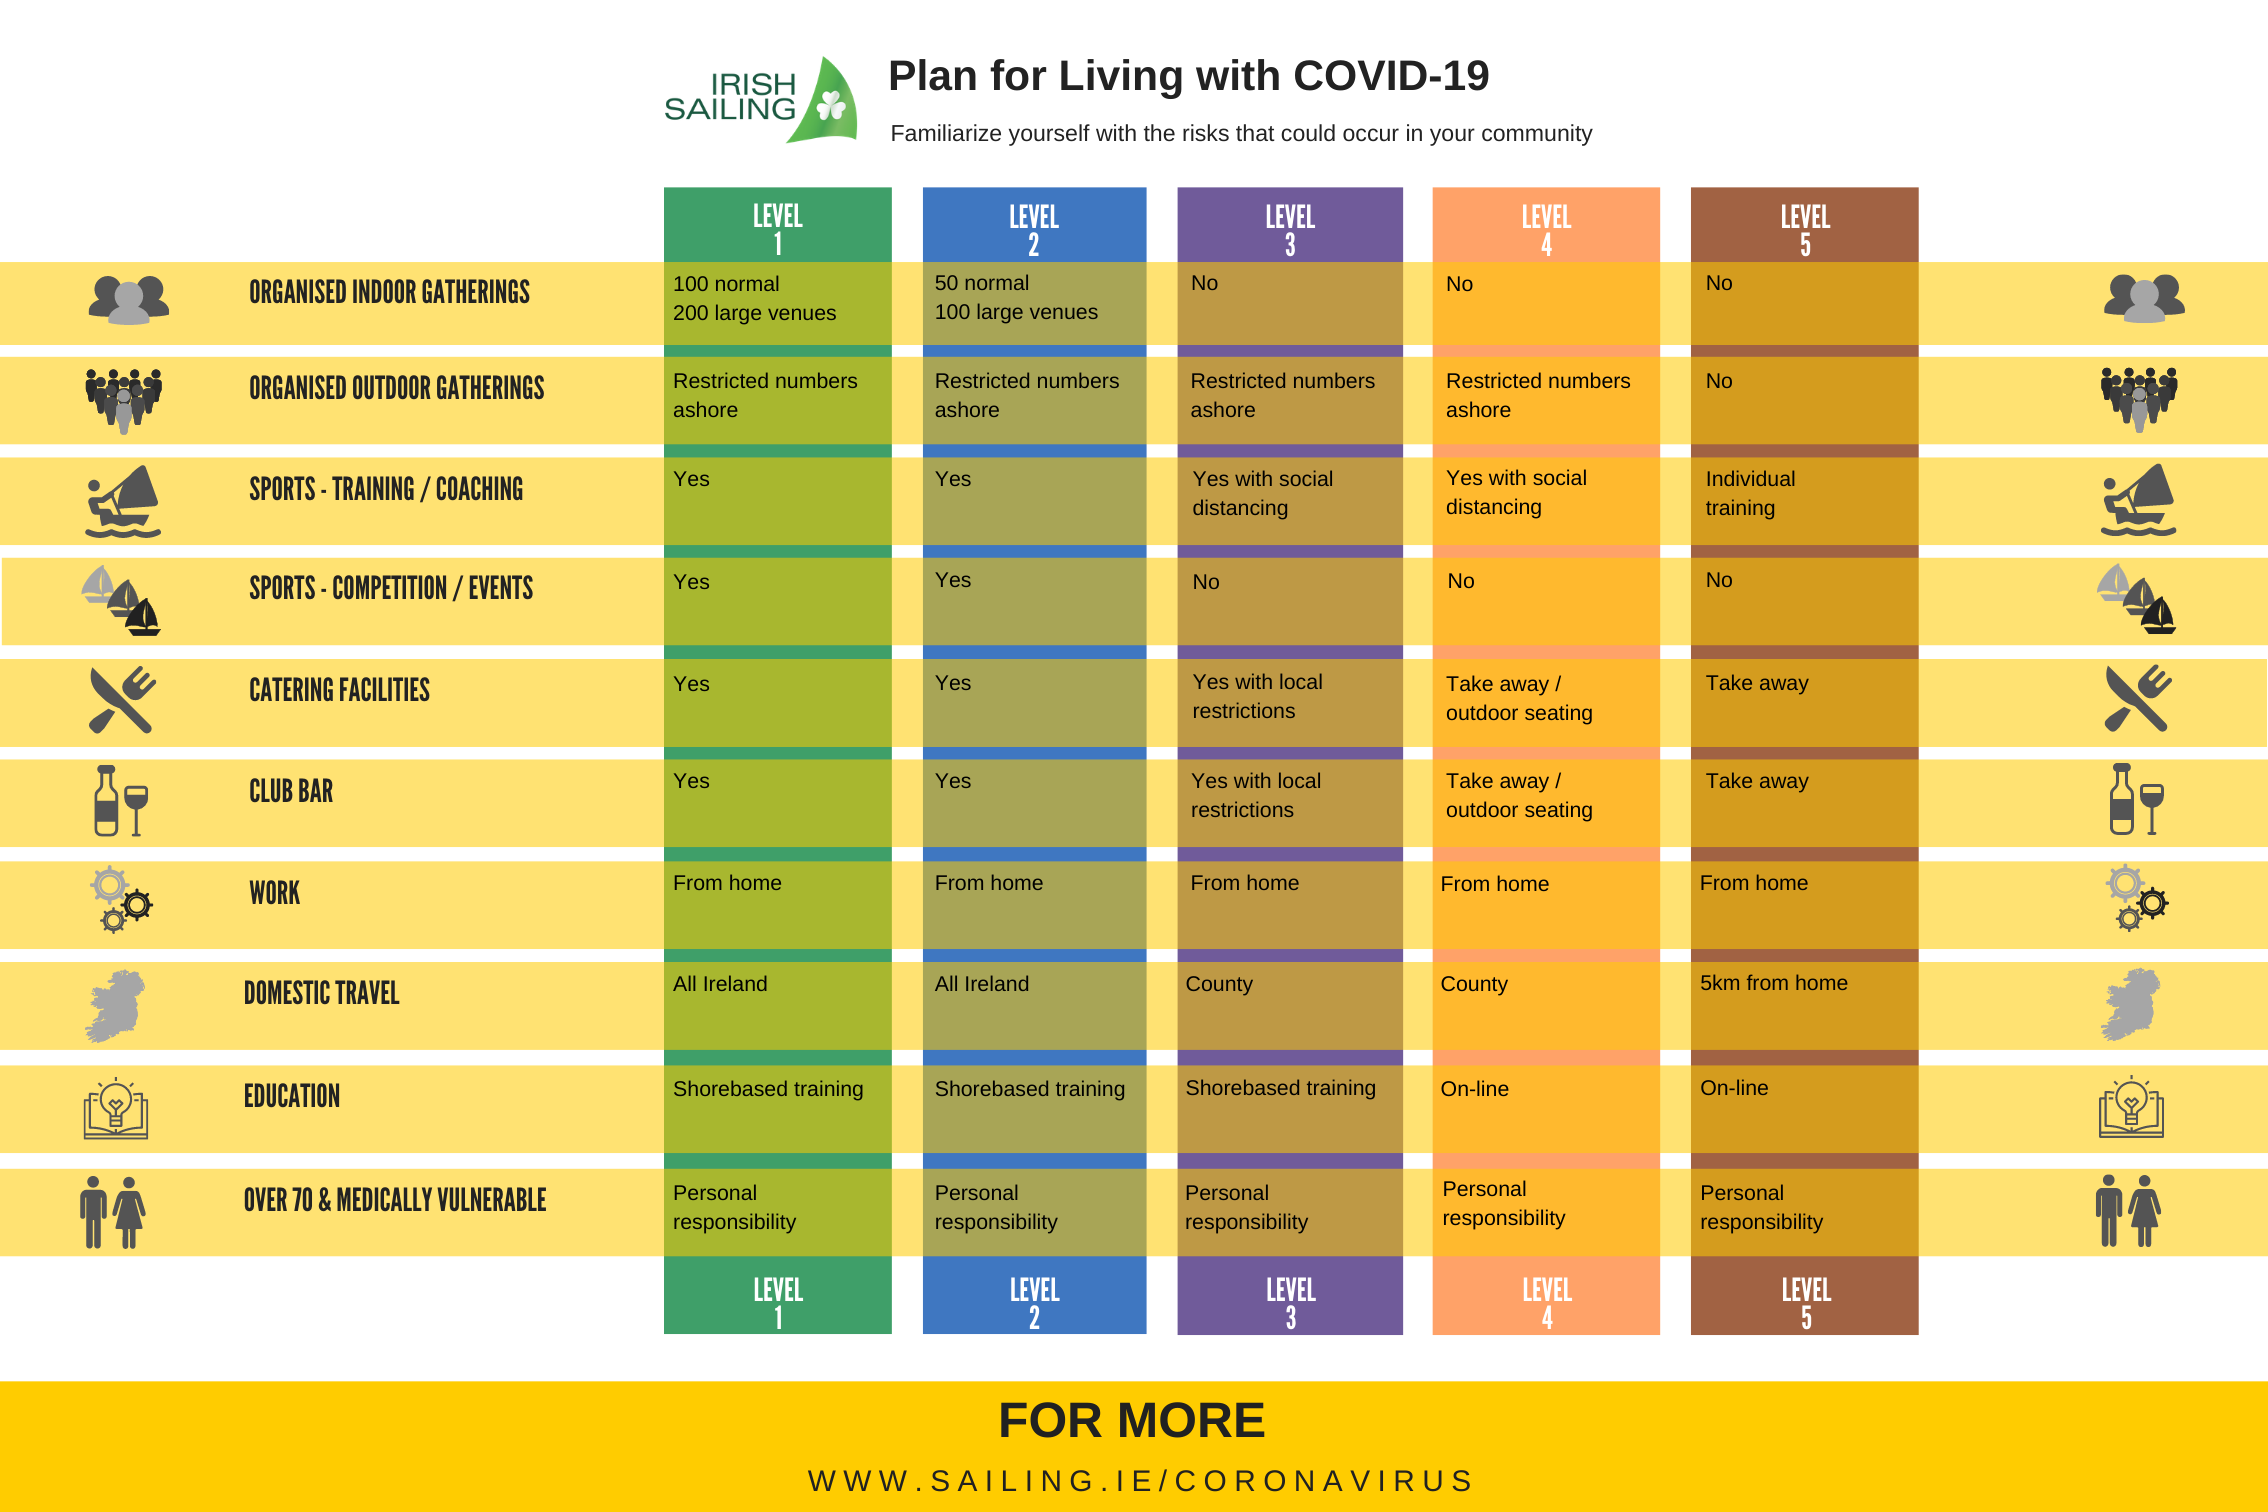 Irish Sailing Plan for Living with COVID19